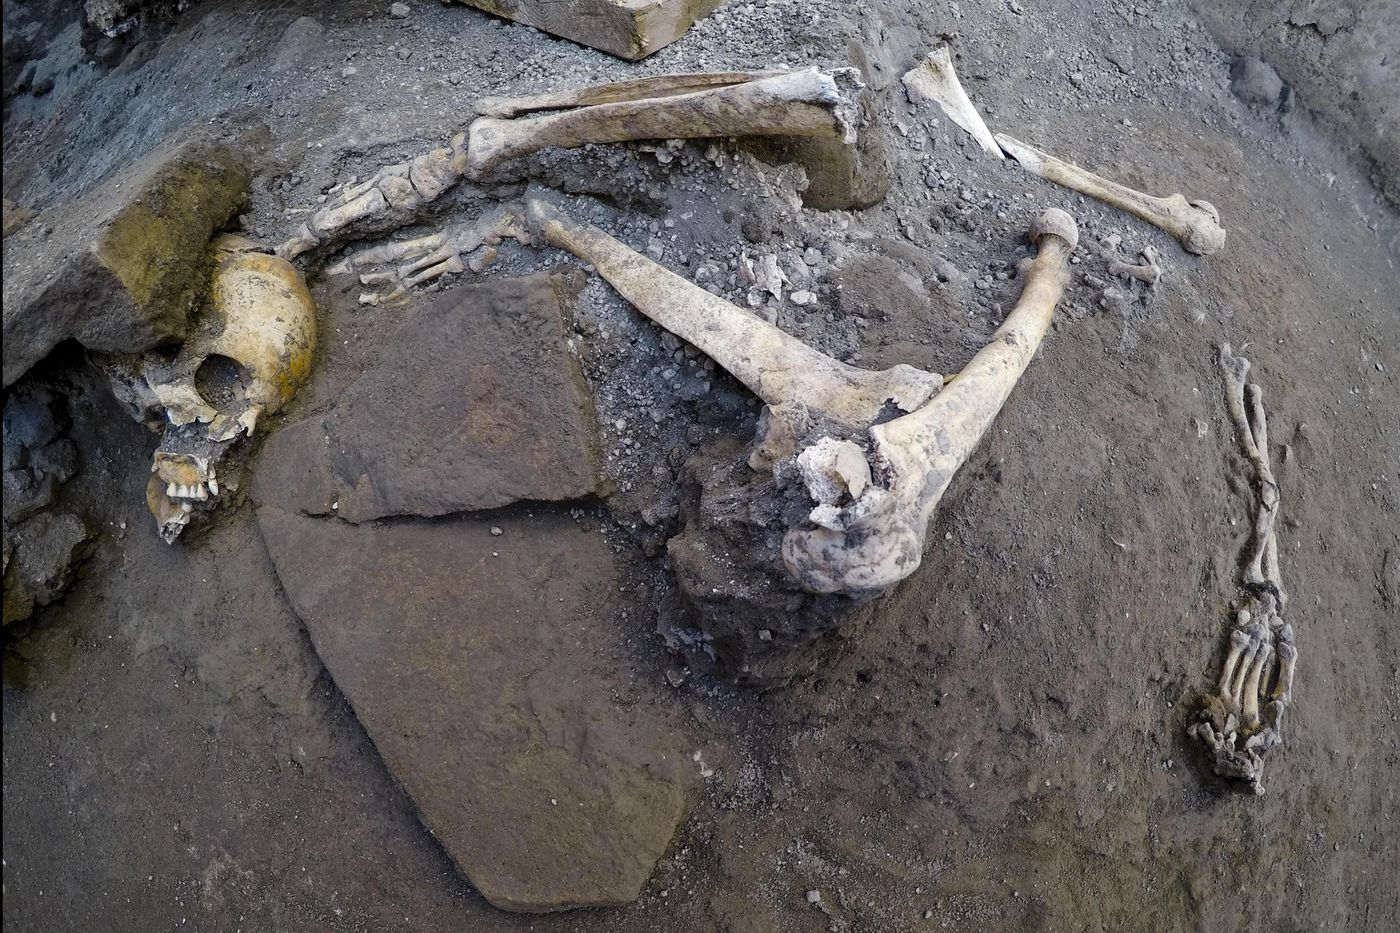 Dig at Italy's Pompeii volcanic site yields 5 skeletons